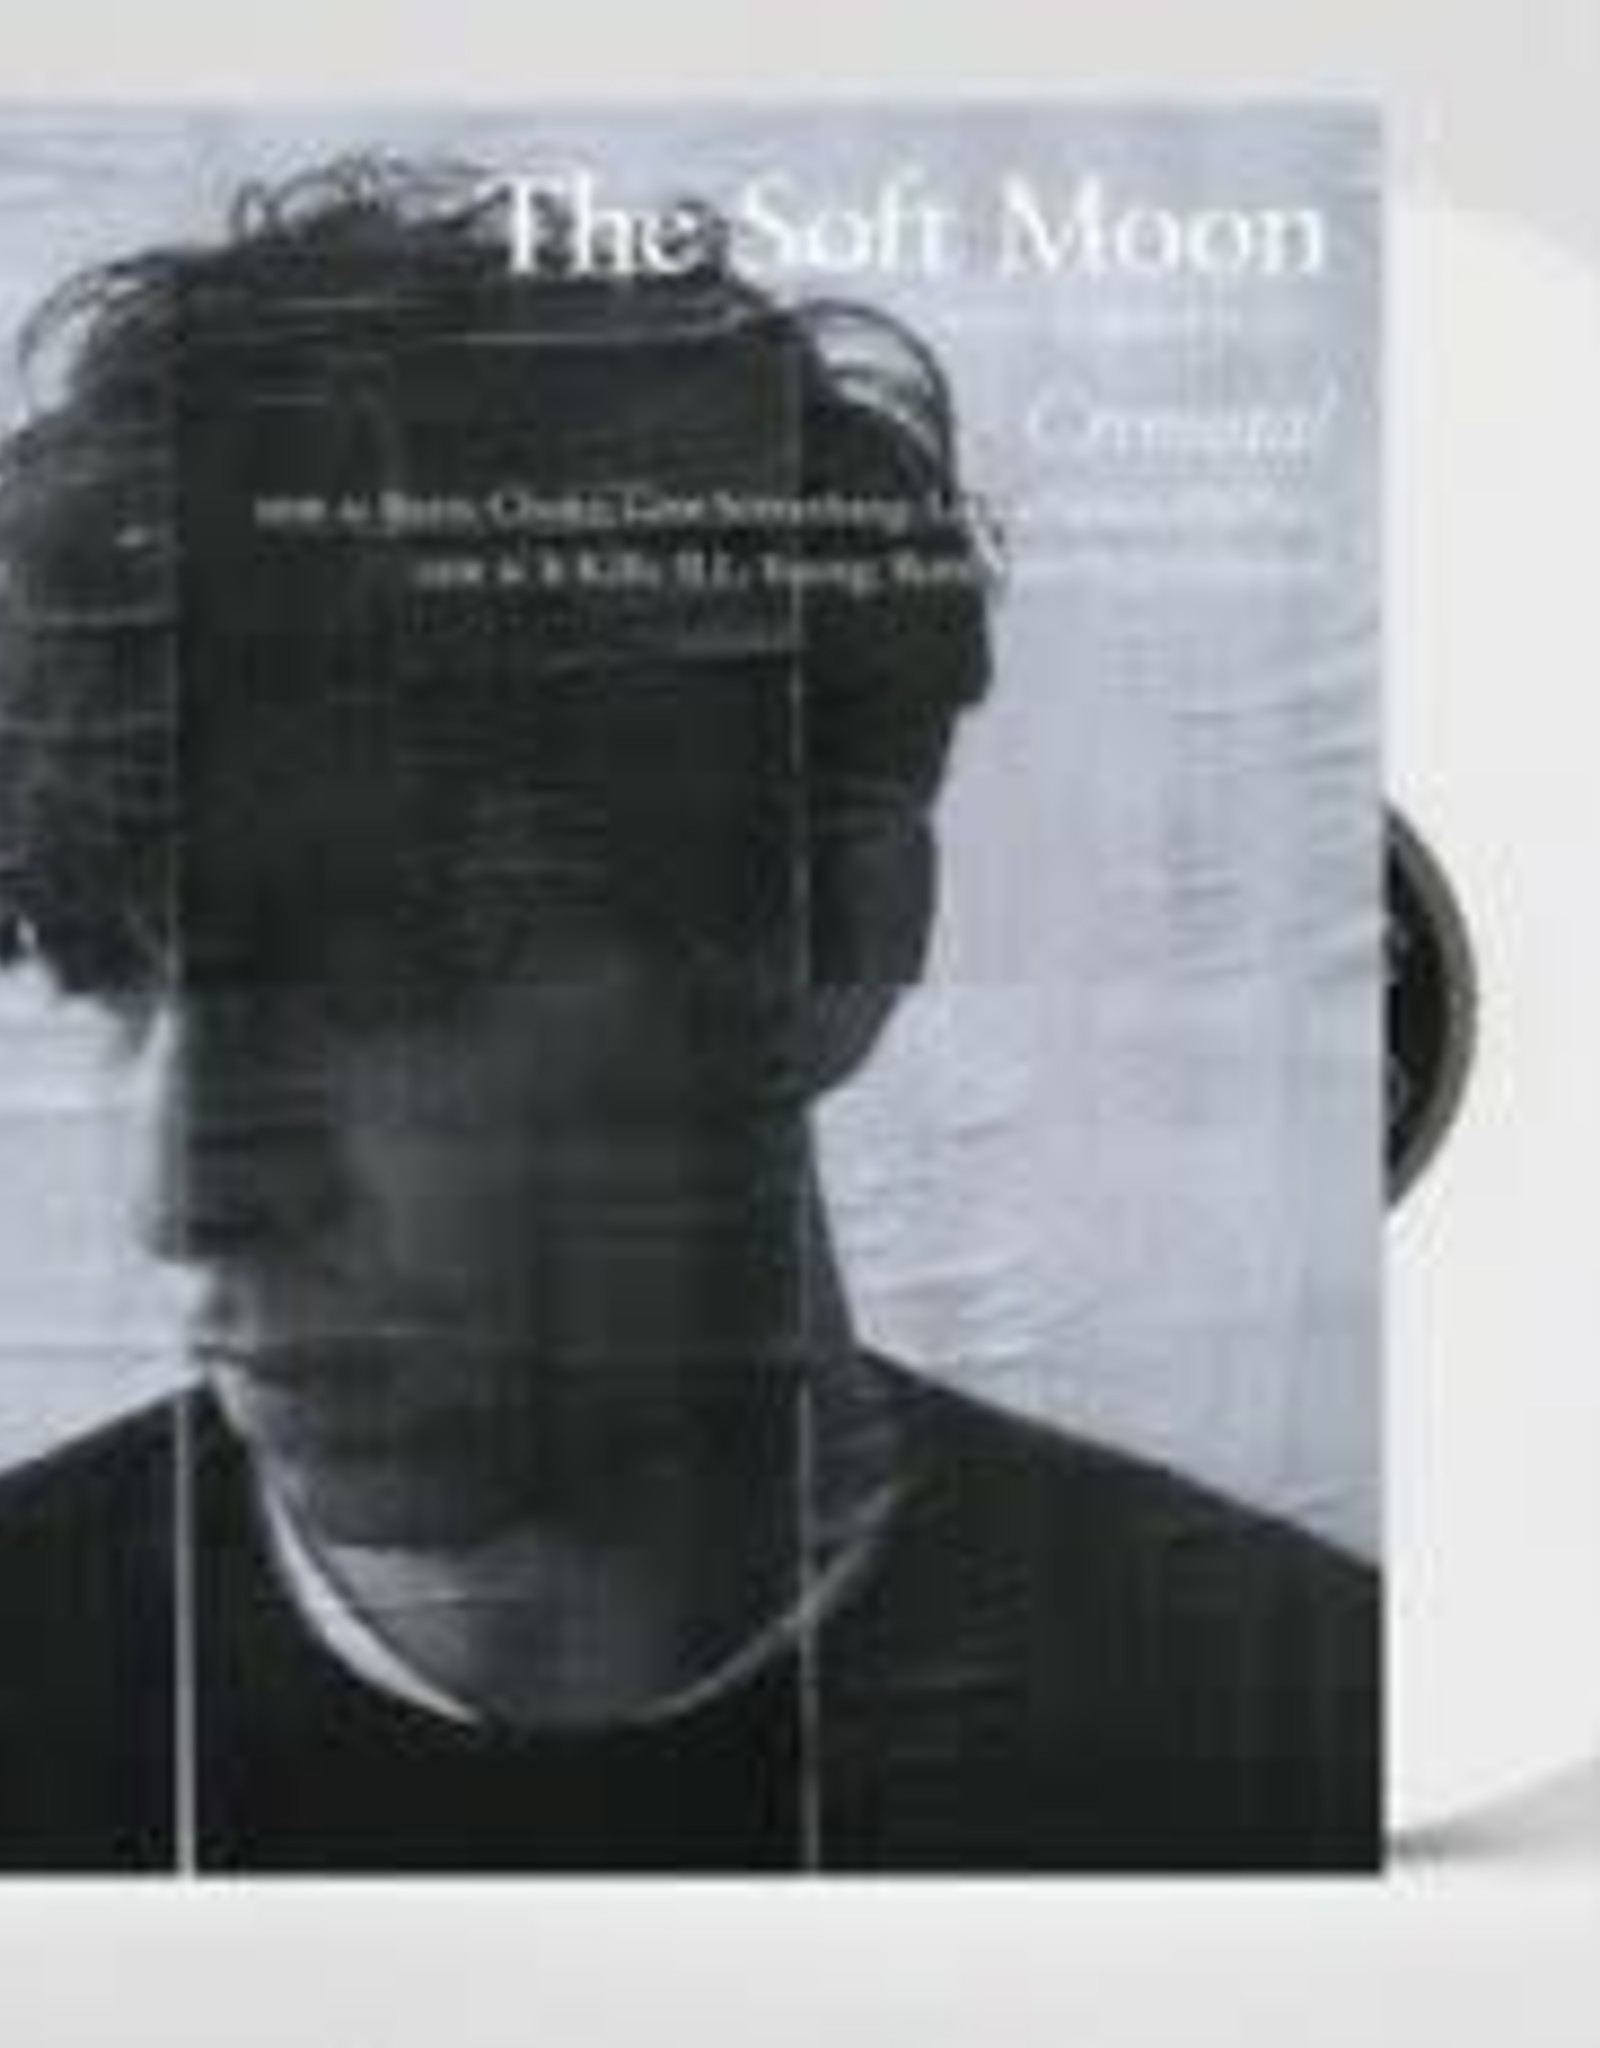 The Soft Moon - Criminal (Indie Exclusive White Vinyl)